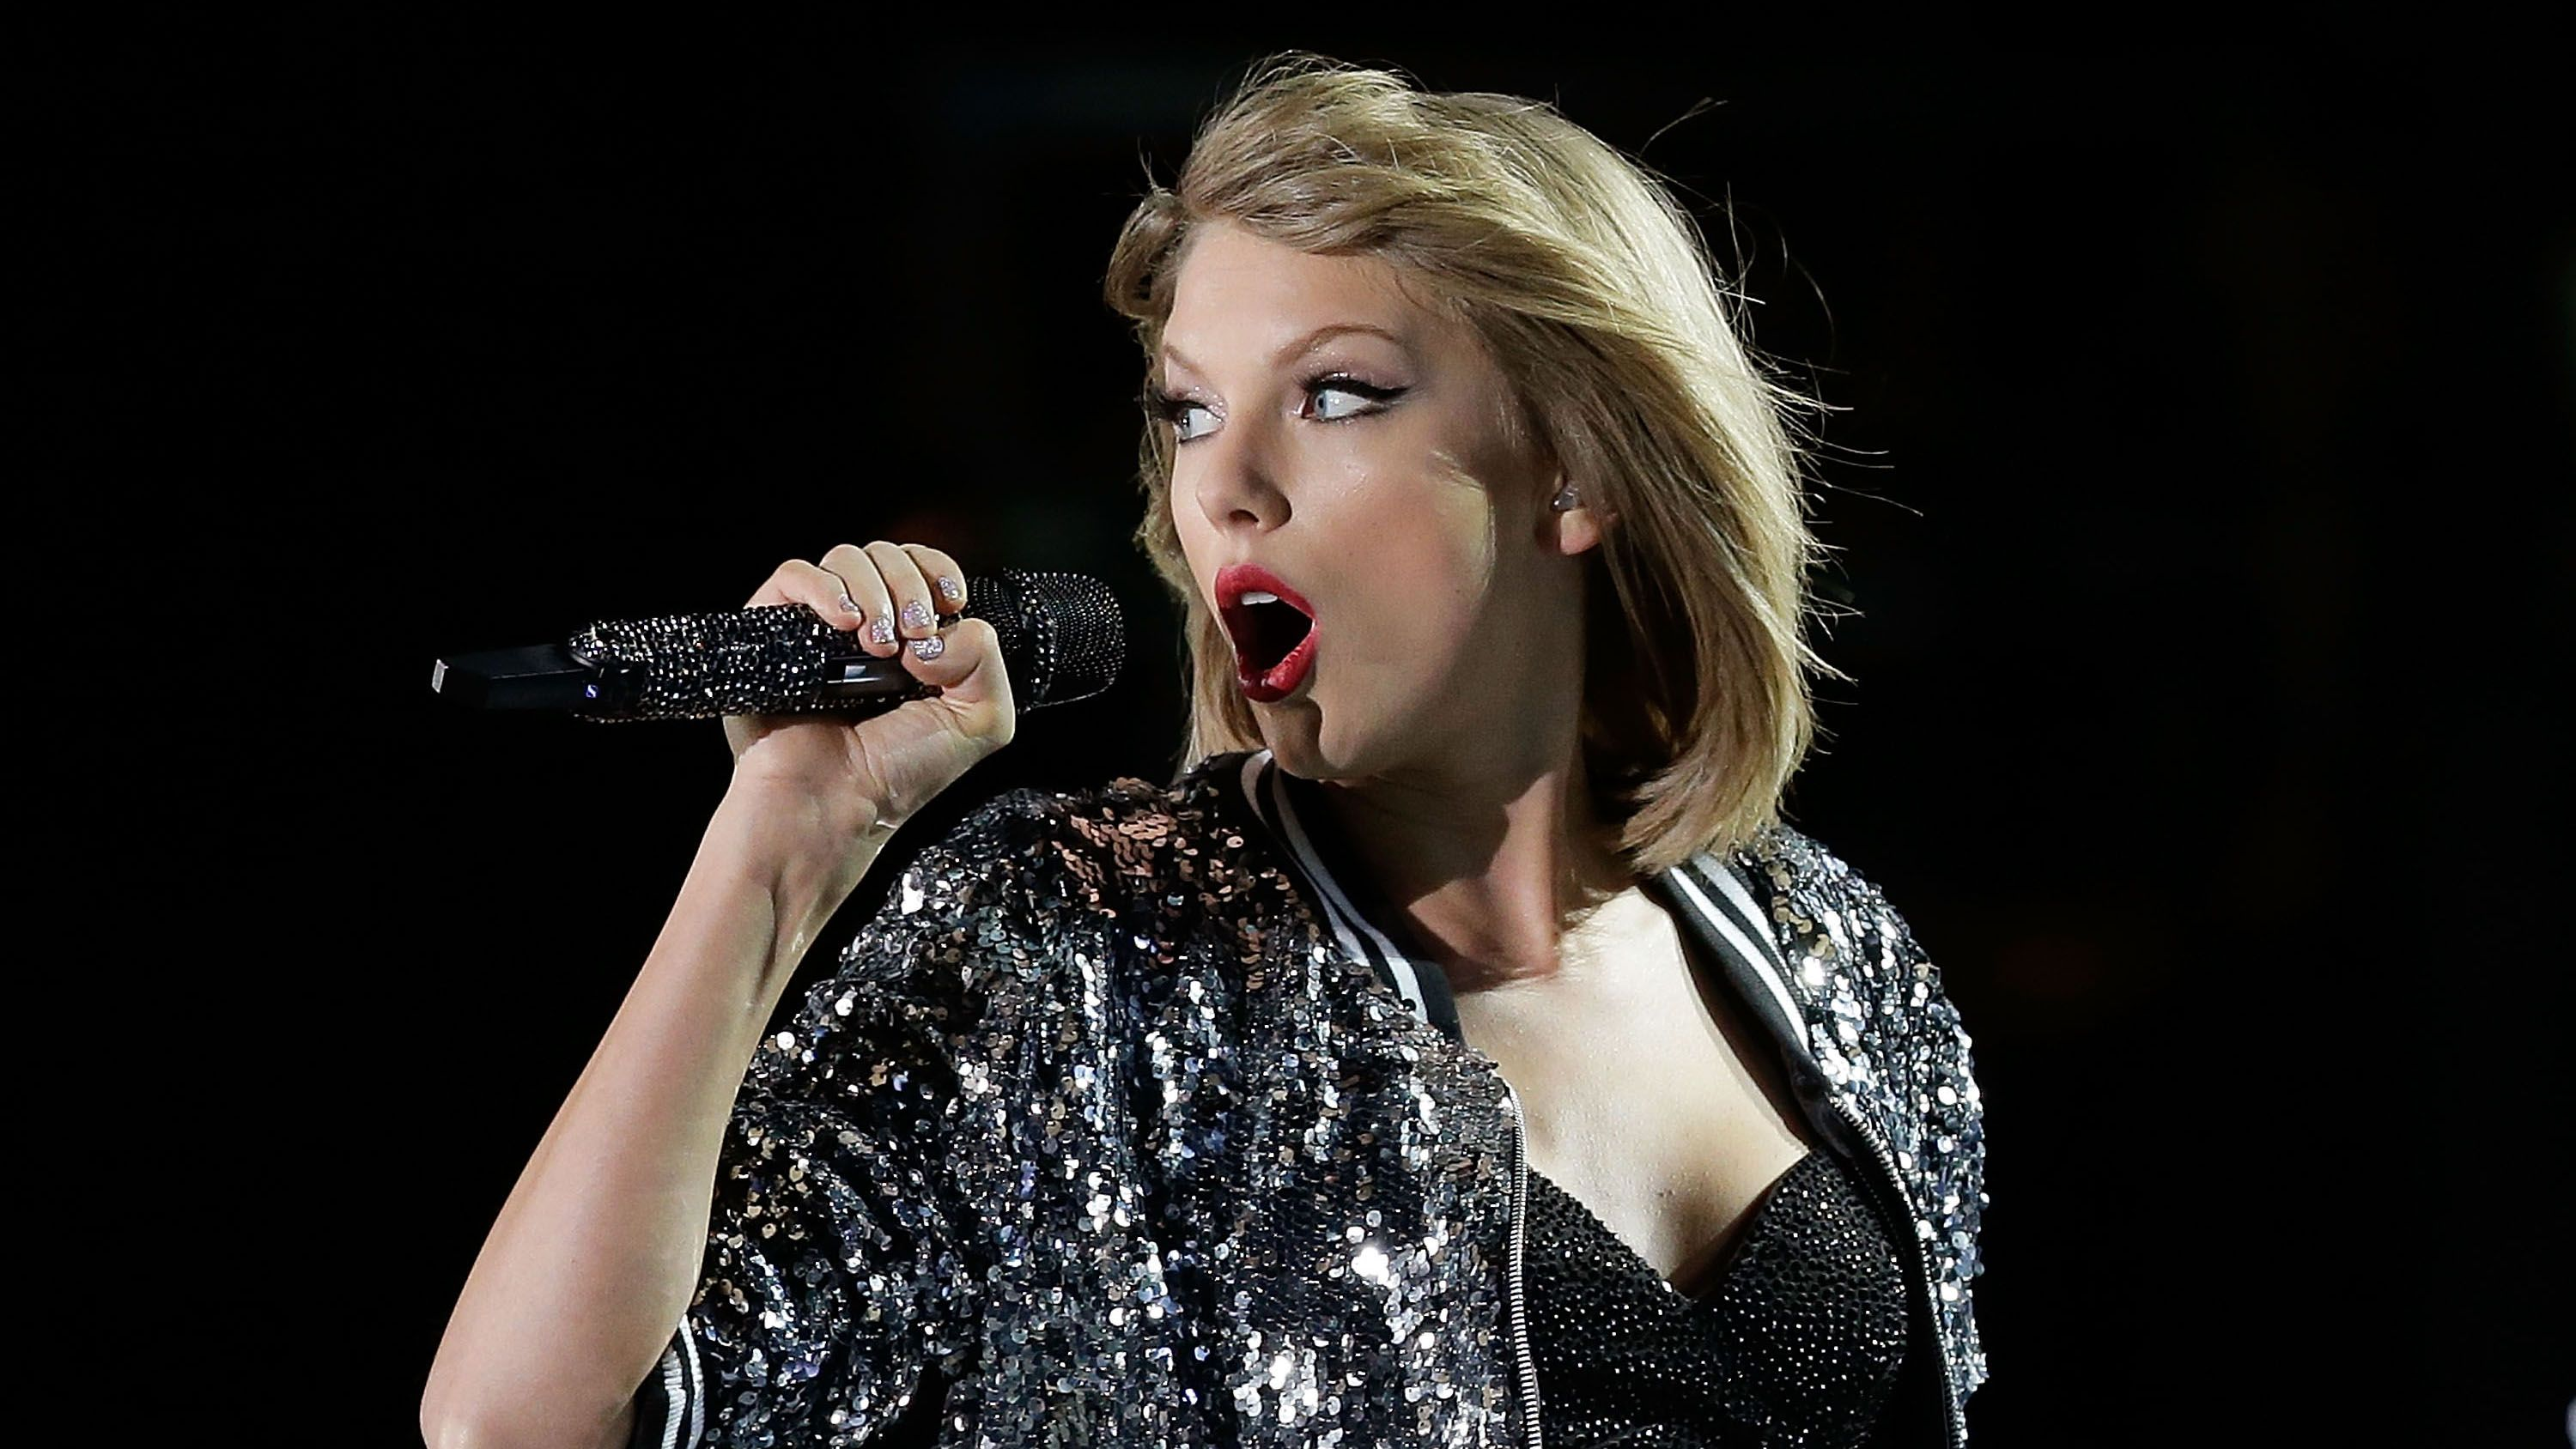 Taylor Swift's Sixth Album Is On Its Way